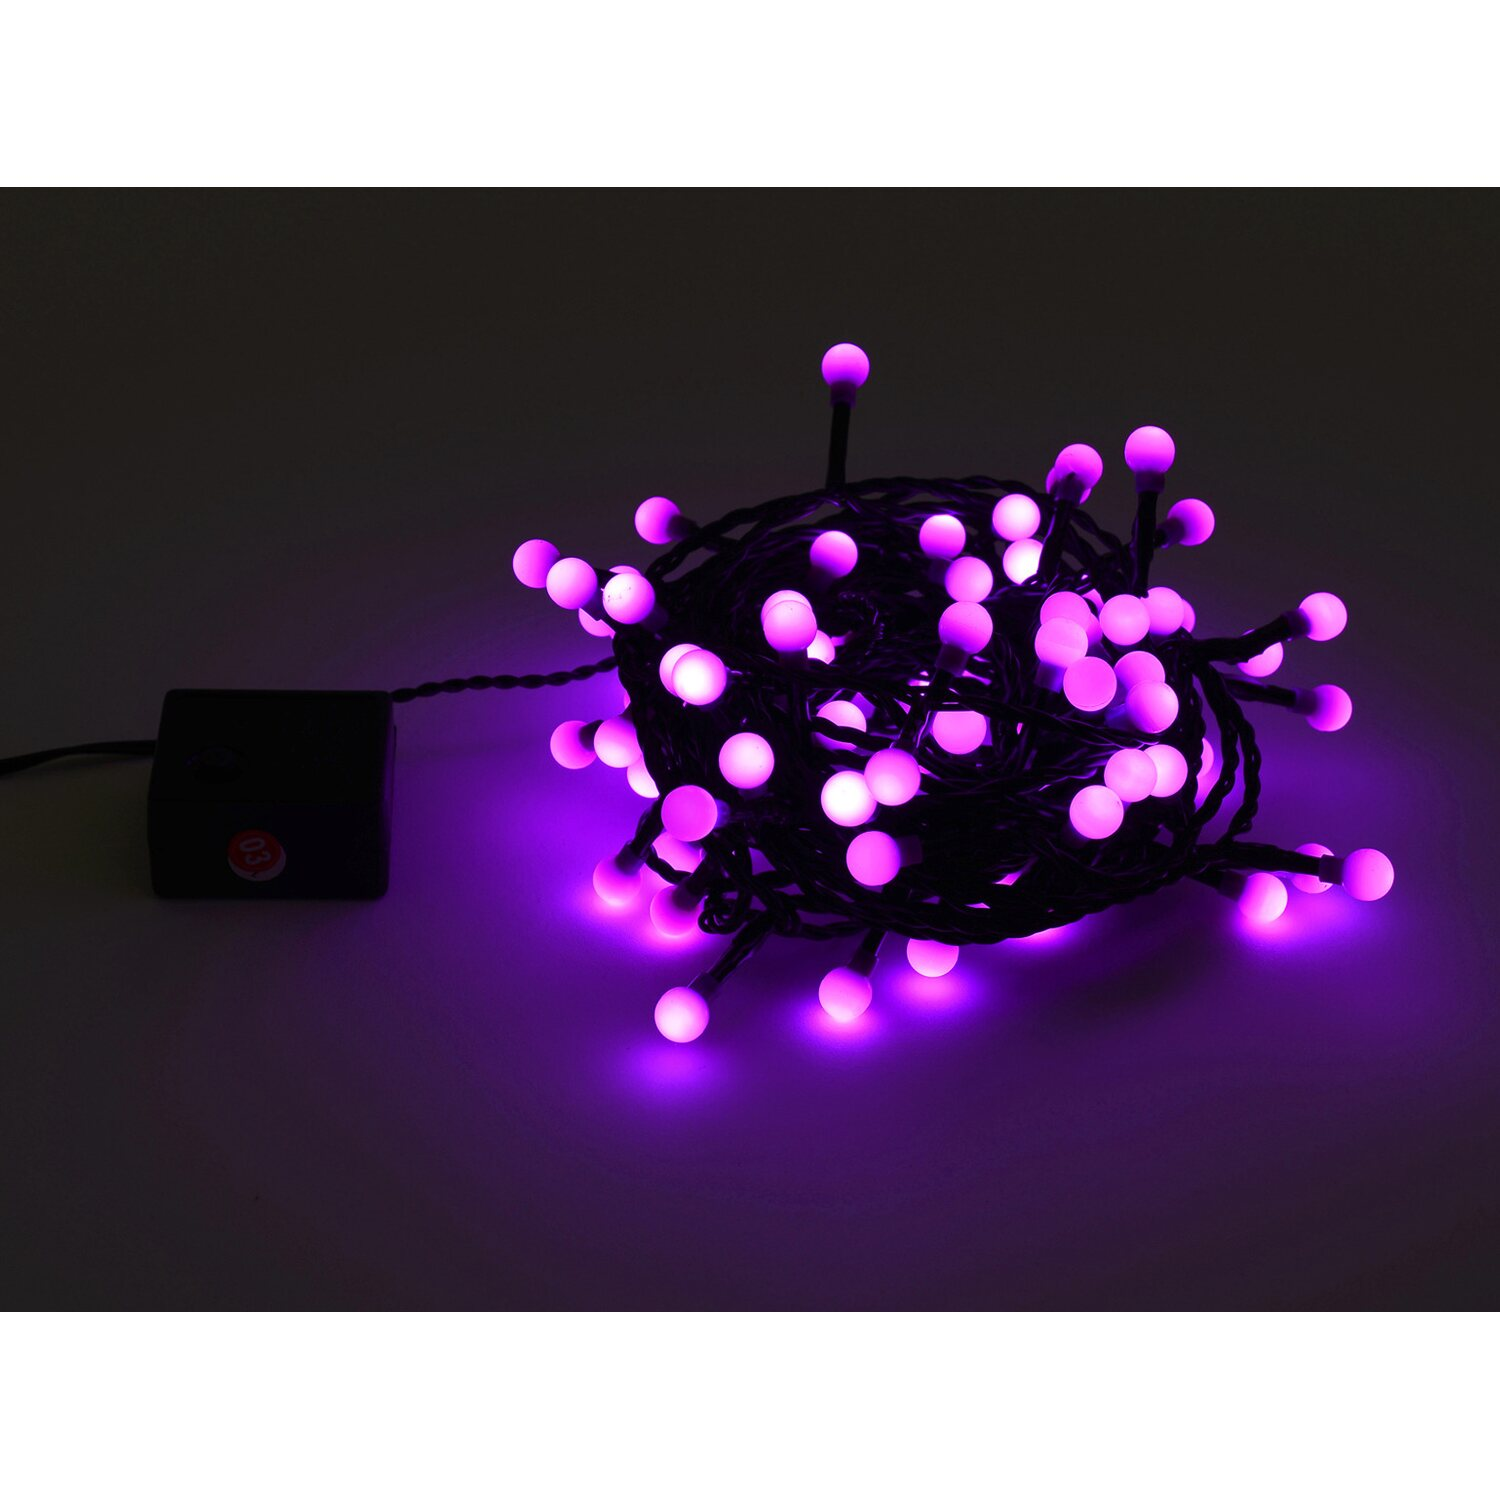 takasho lichterkette berry mit 80 led violett kaufen bei obi. Black Bedroom Furniture Sets. Home Design Ideas